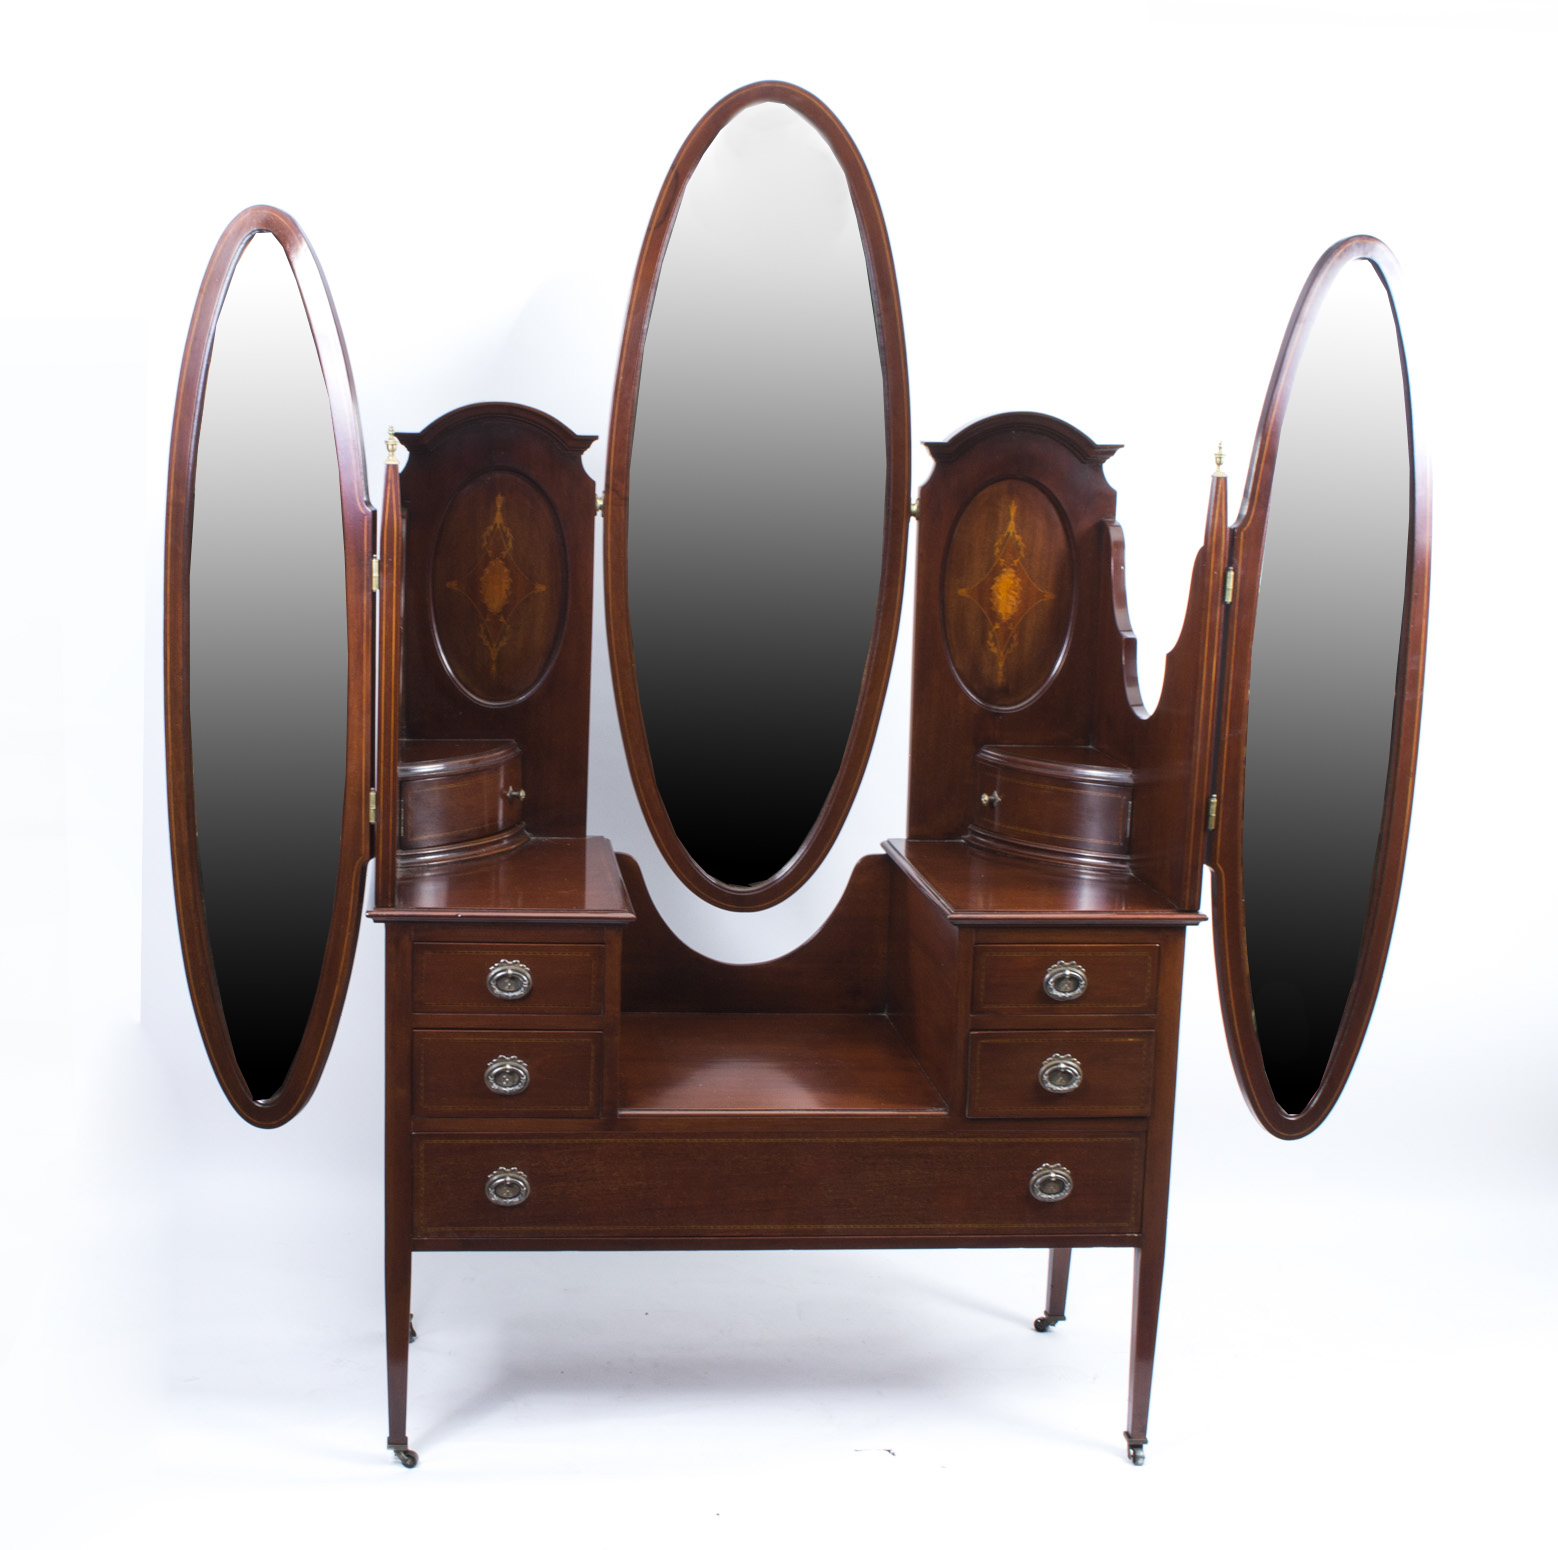 Antique dressing table with mirror - Antique Edwardian Mahogany Triple Mirror Dressing Table